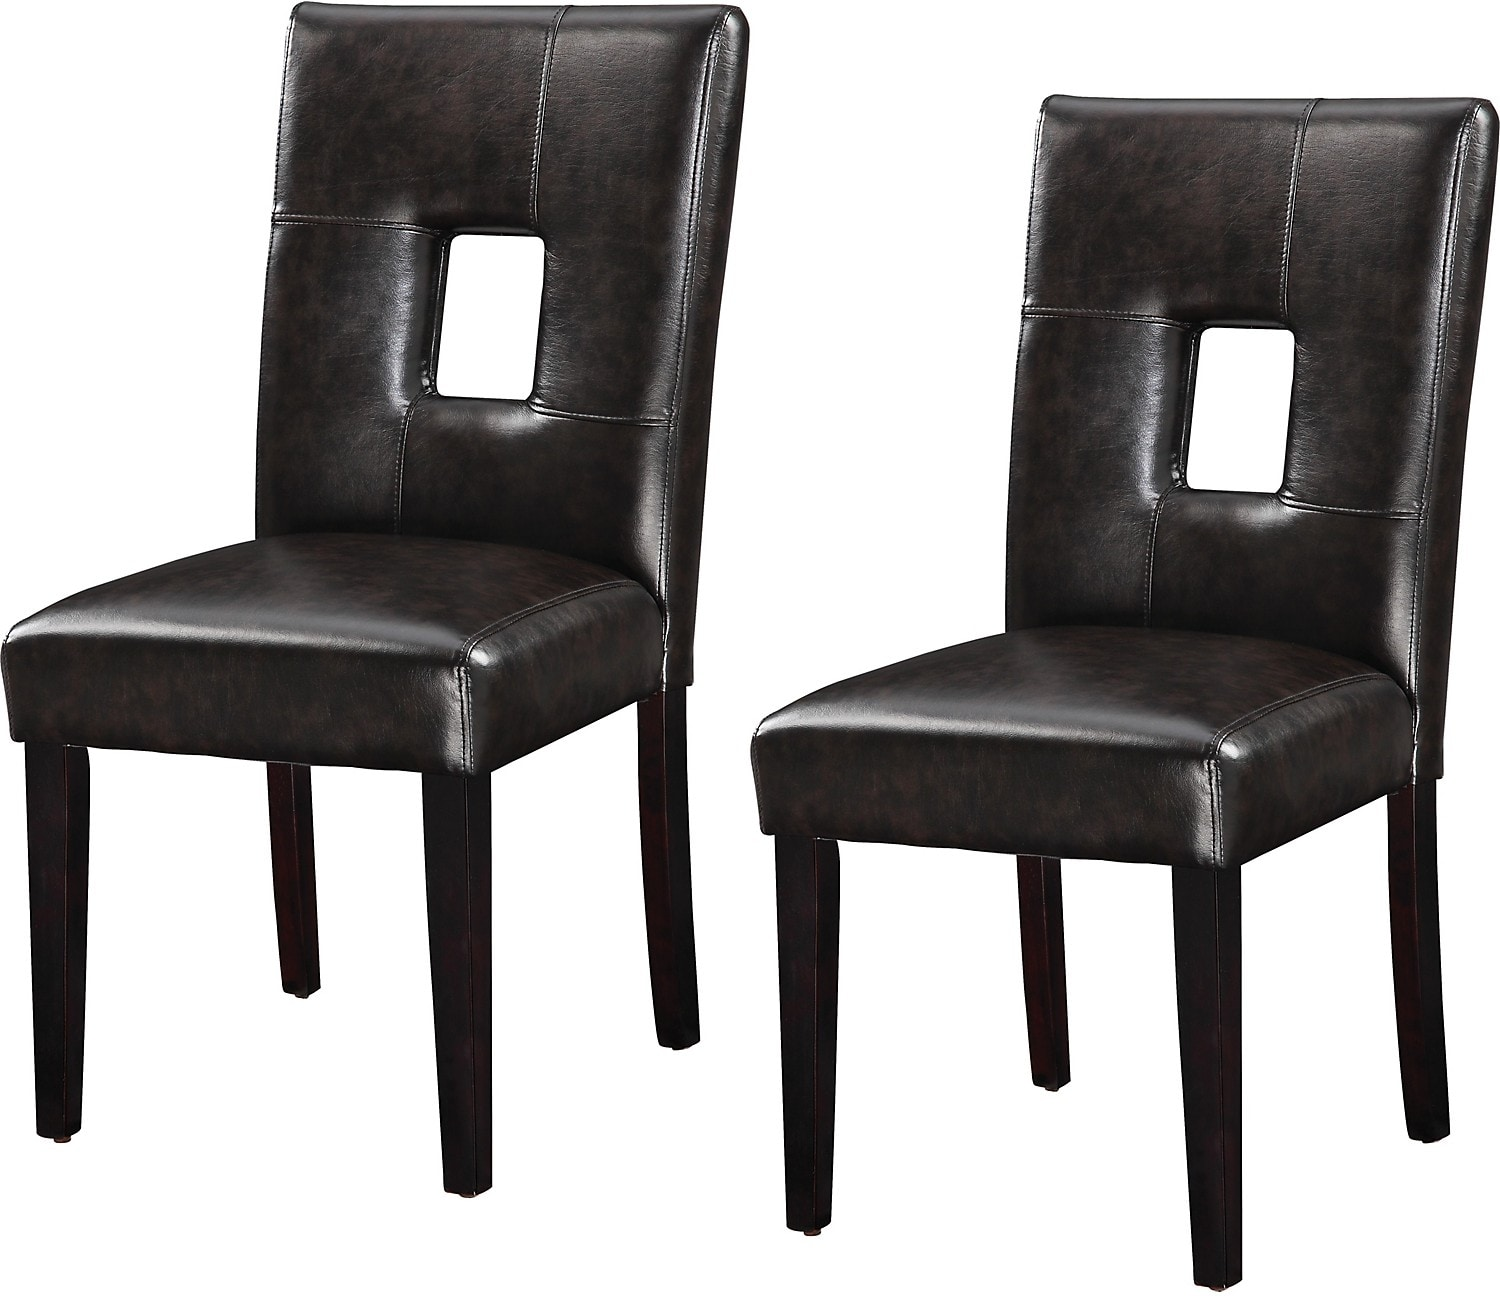 McKenna 2-Piece Brown Dining Chair Set